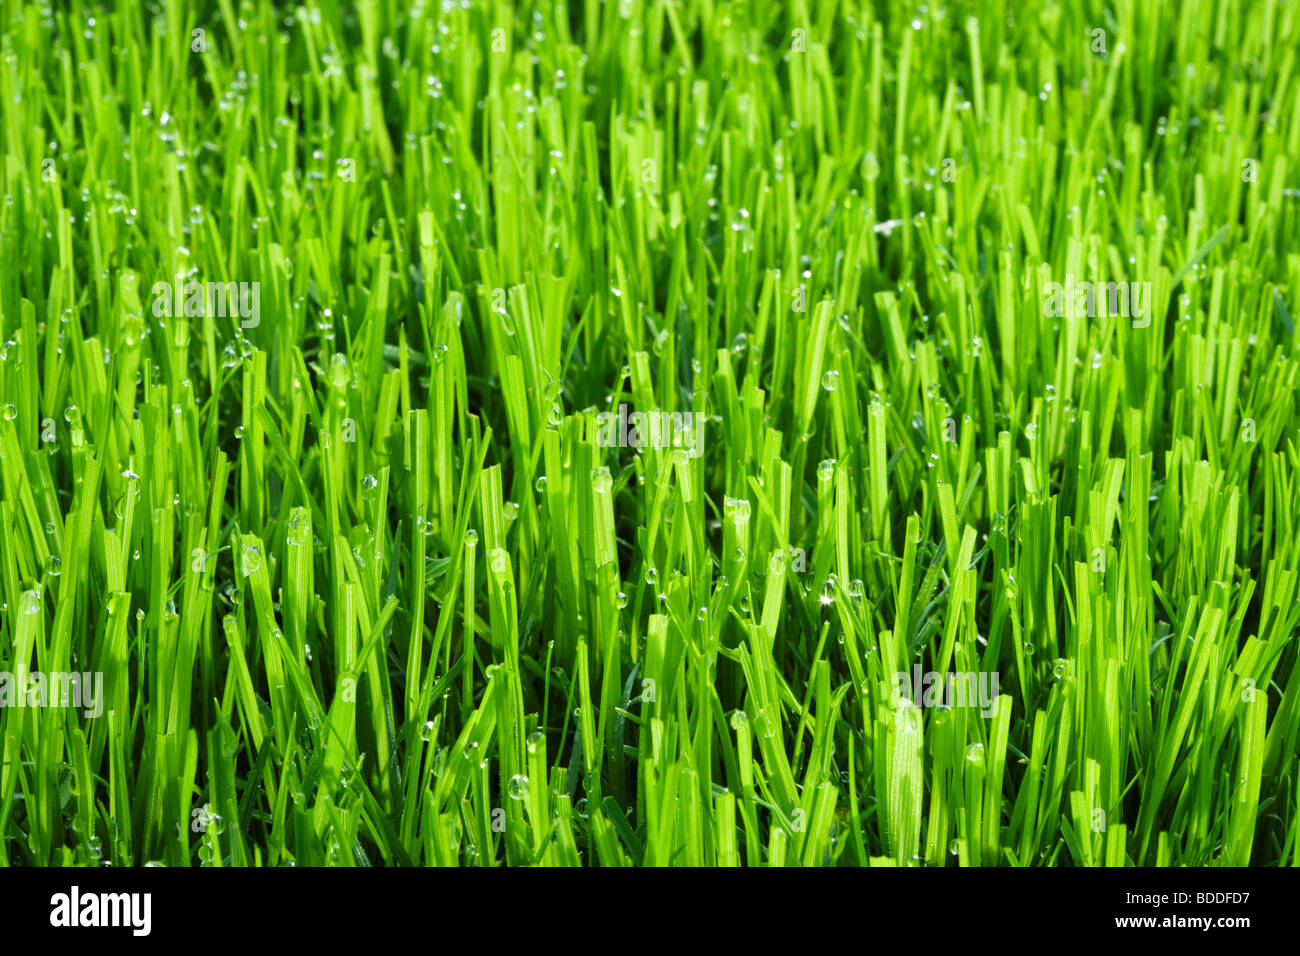 Lawn grass with water droplets - Stock Image